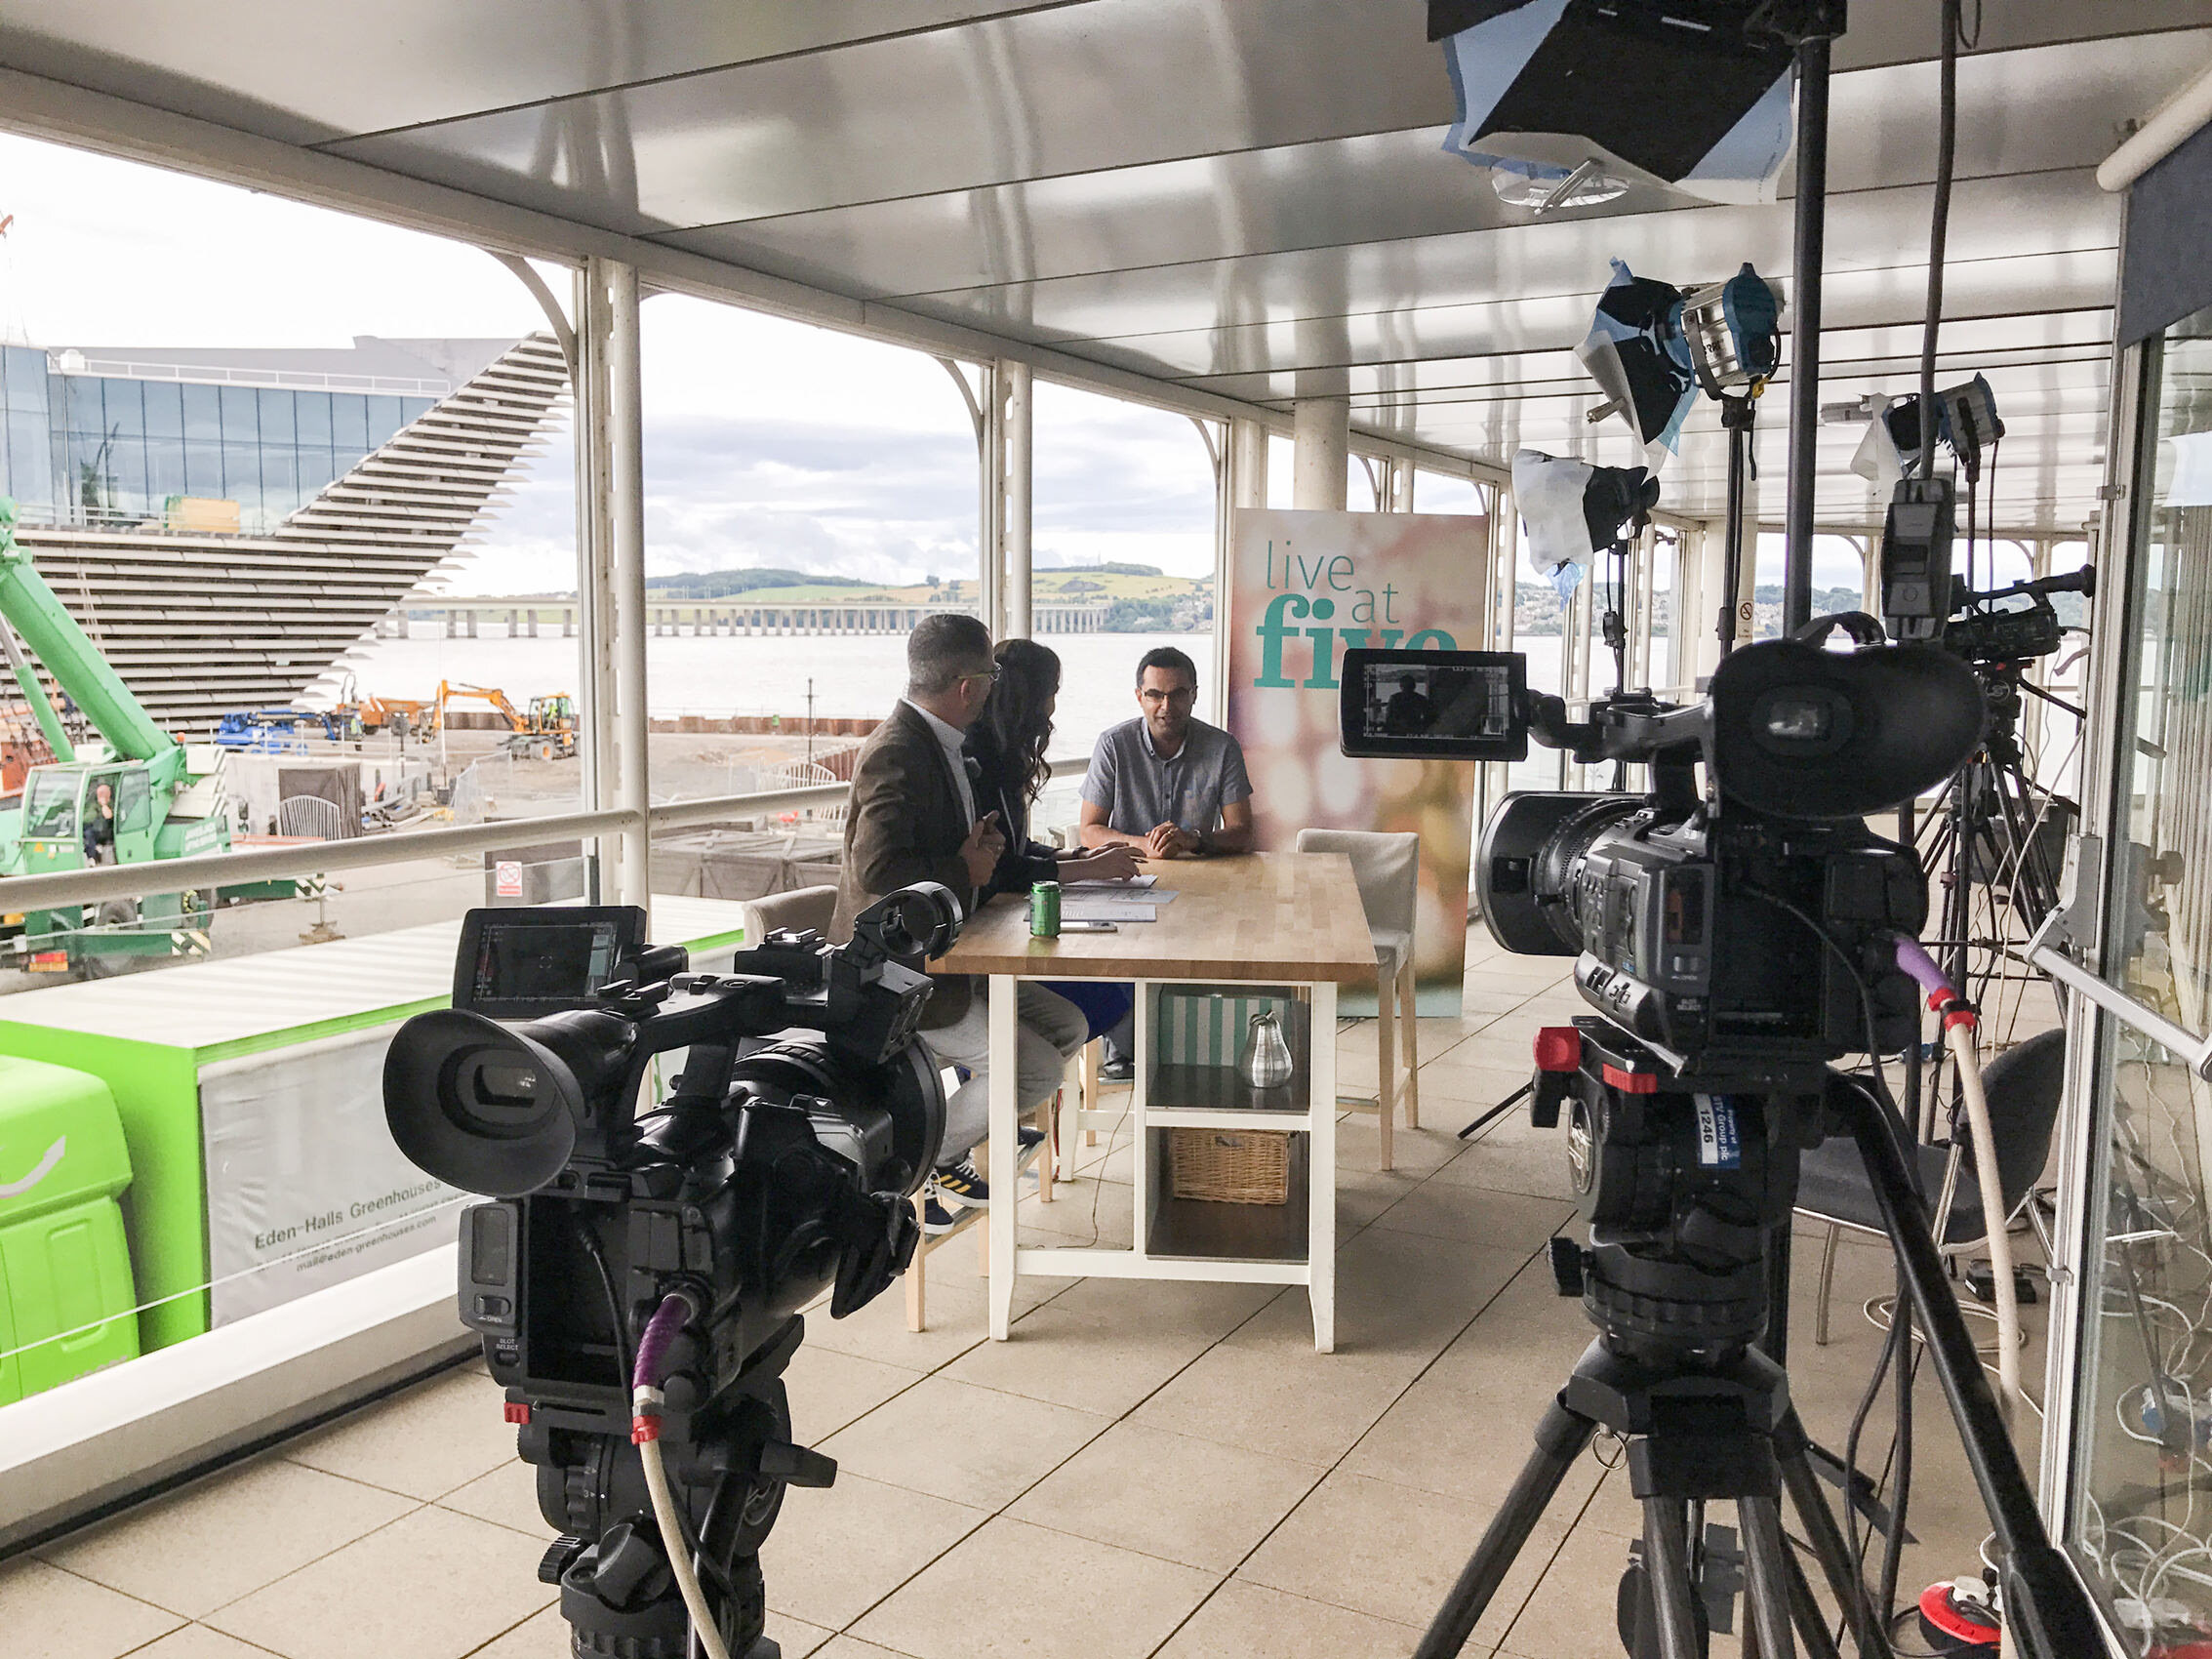 STV2 Live at Five - Behind the Scenes